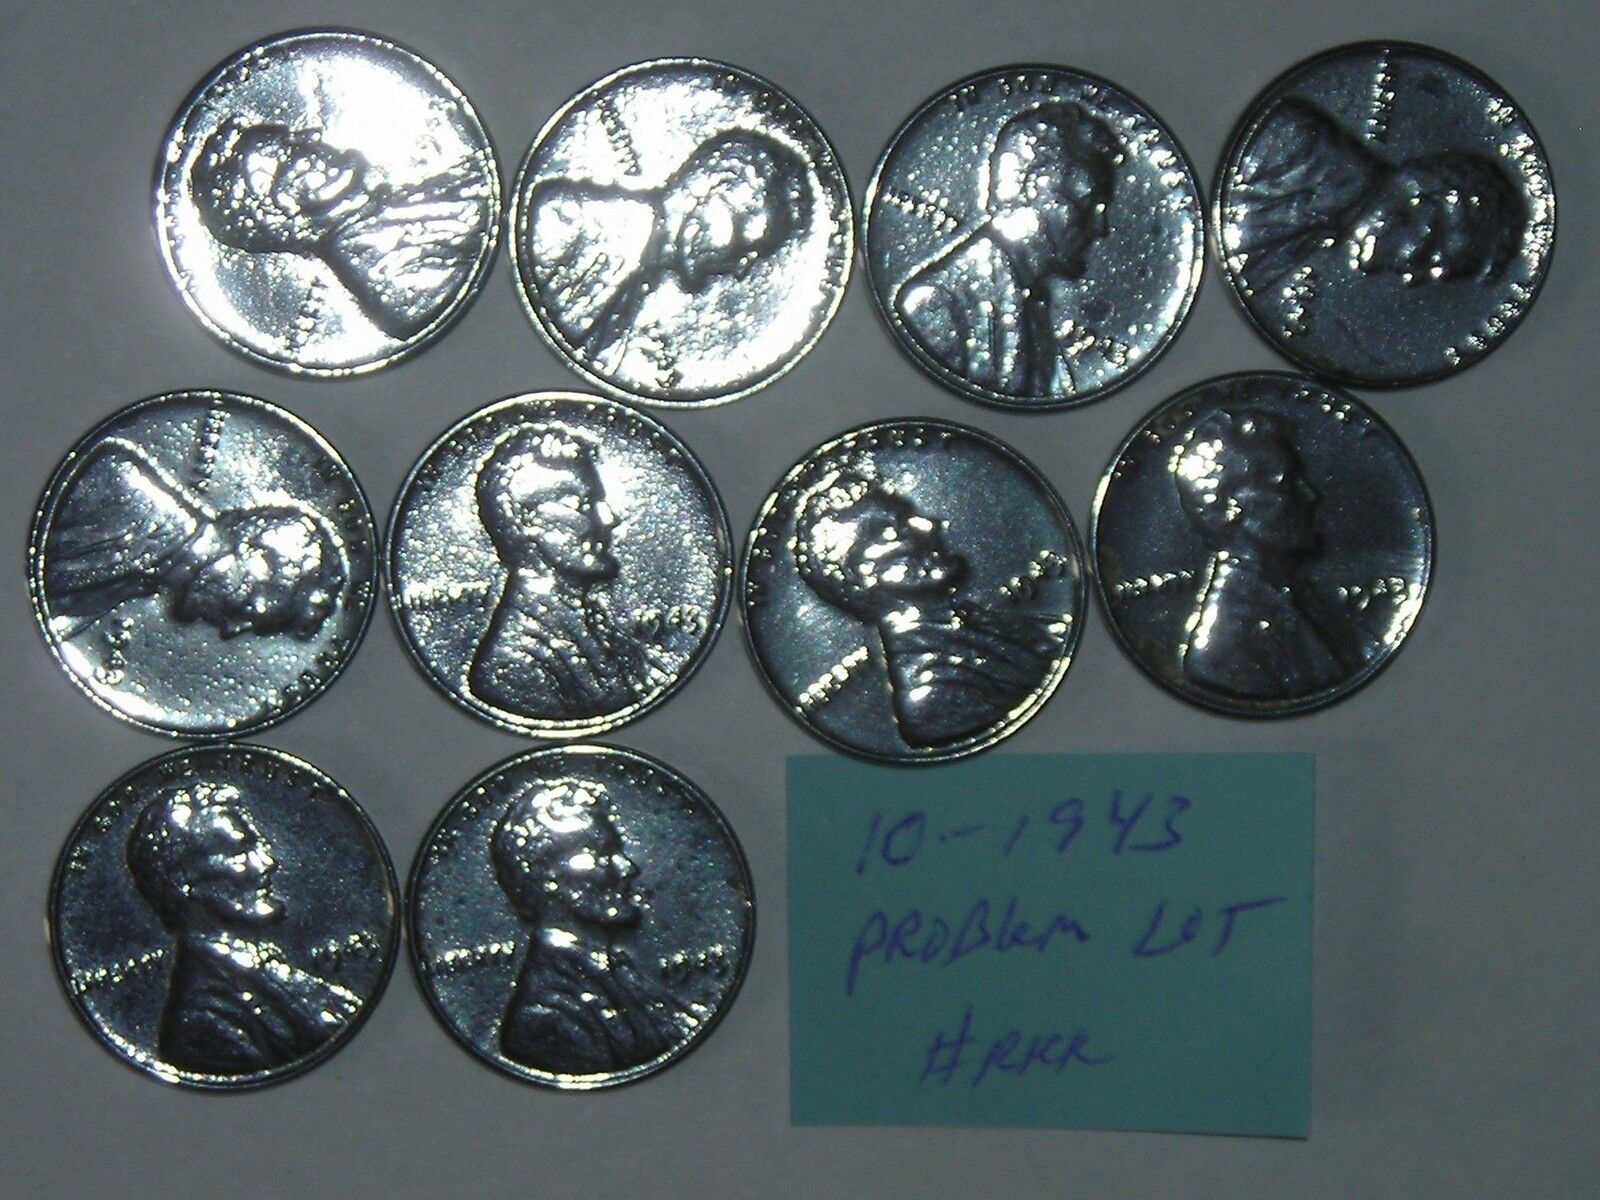 wheat penny 1943 STEEL LOT OF 10 WITH PROBLEMS 1943-P LINCOLN CENTS PARTIAL ROLL